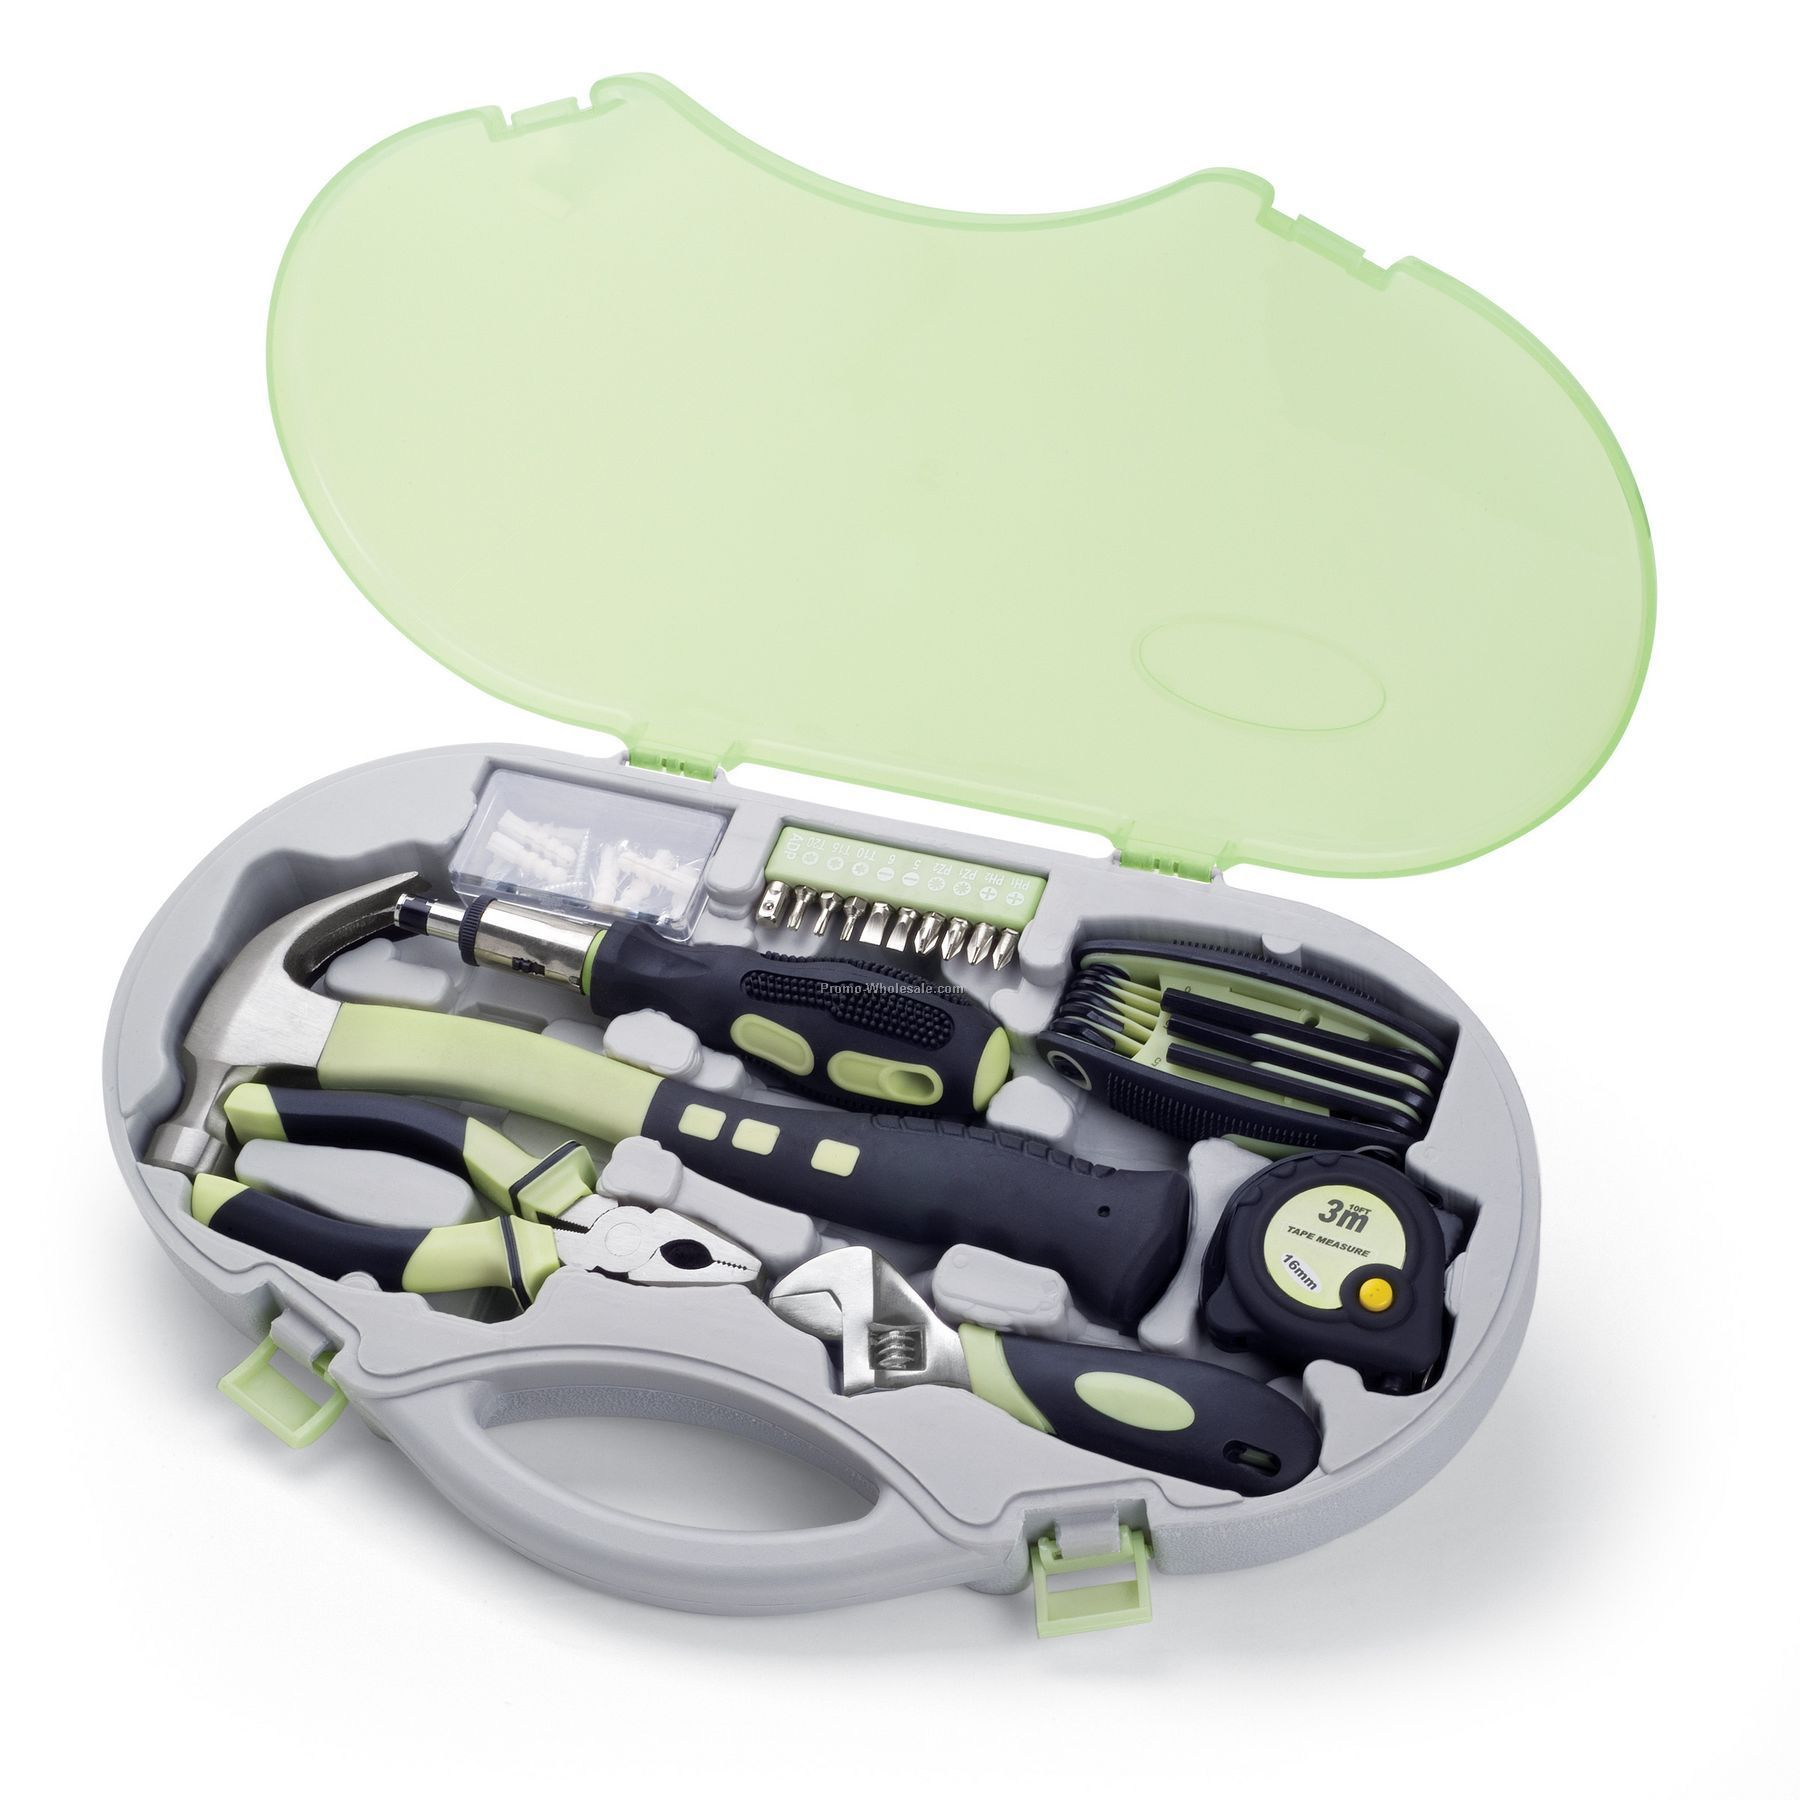 Bella Compact 6 Piece Tool Kit With Comfort Grip Handles